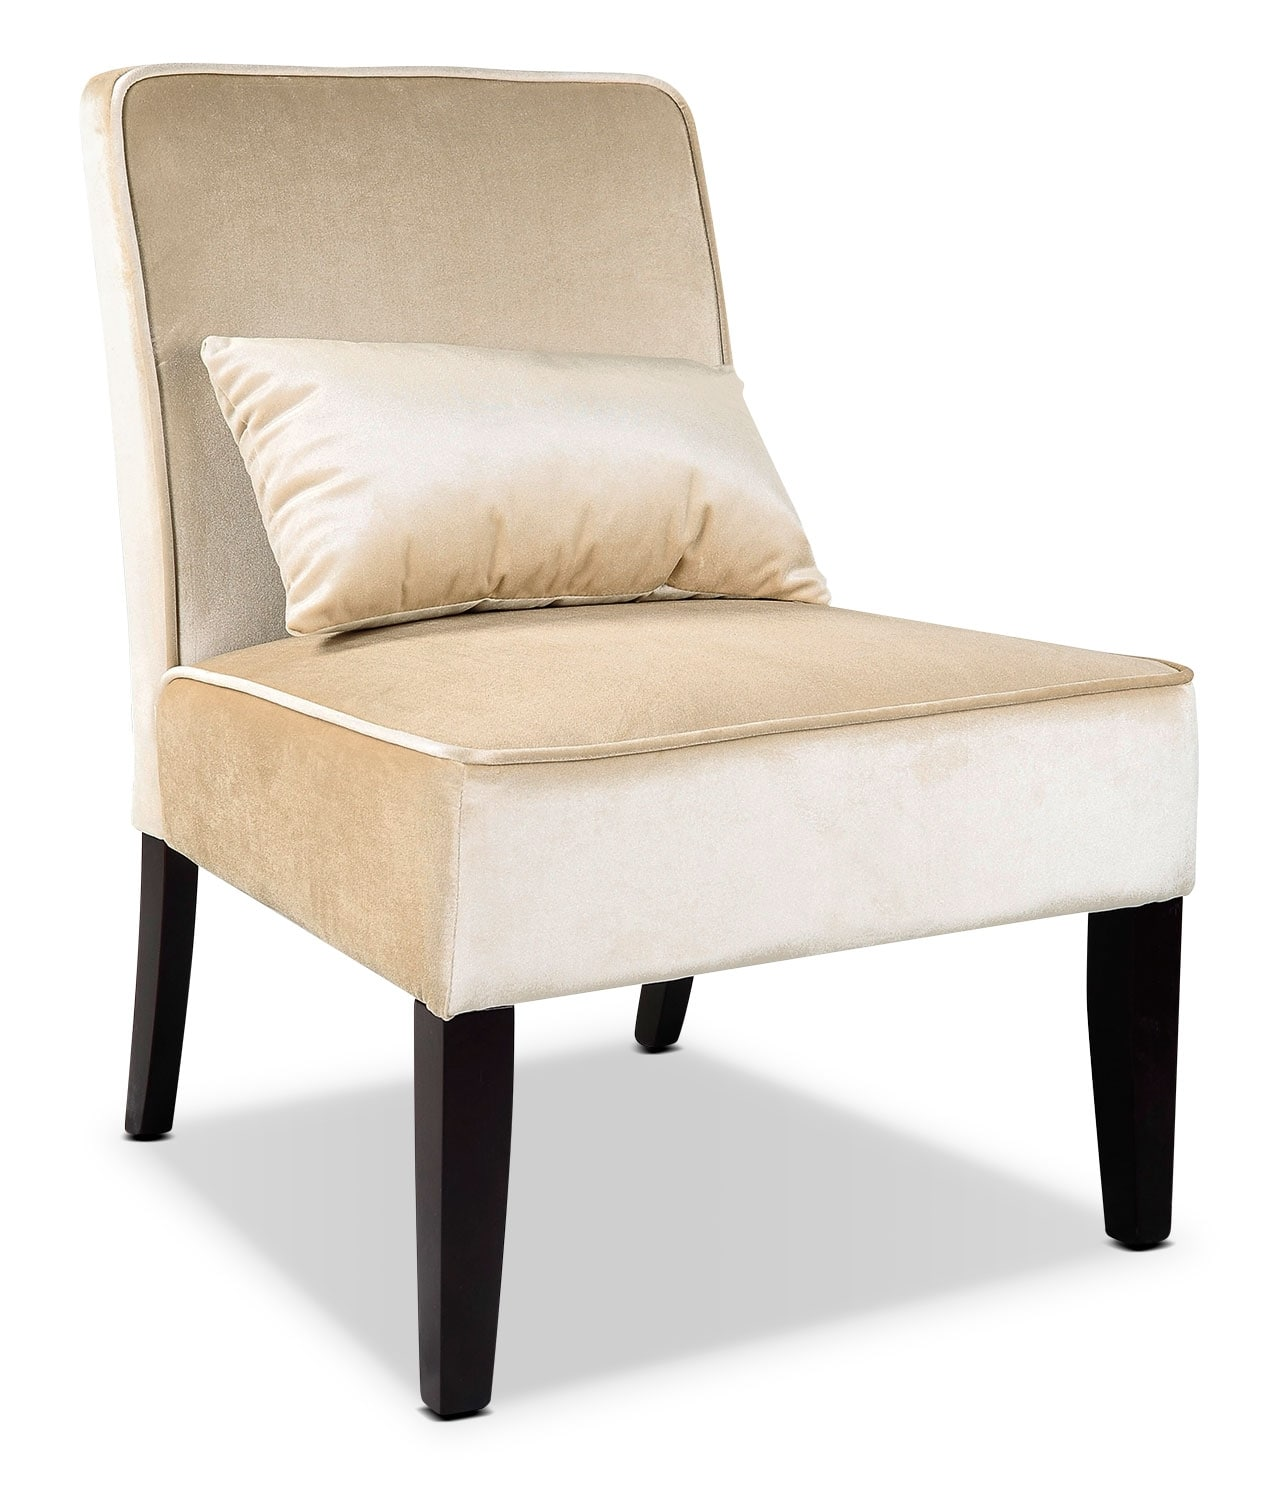 Cream Chairs Lad Velvet Fabric Accent Chair With Accent Cushion Cream